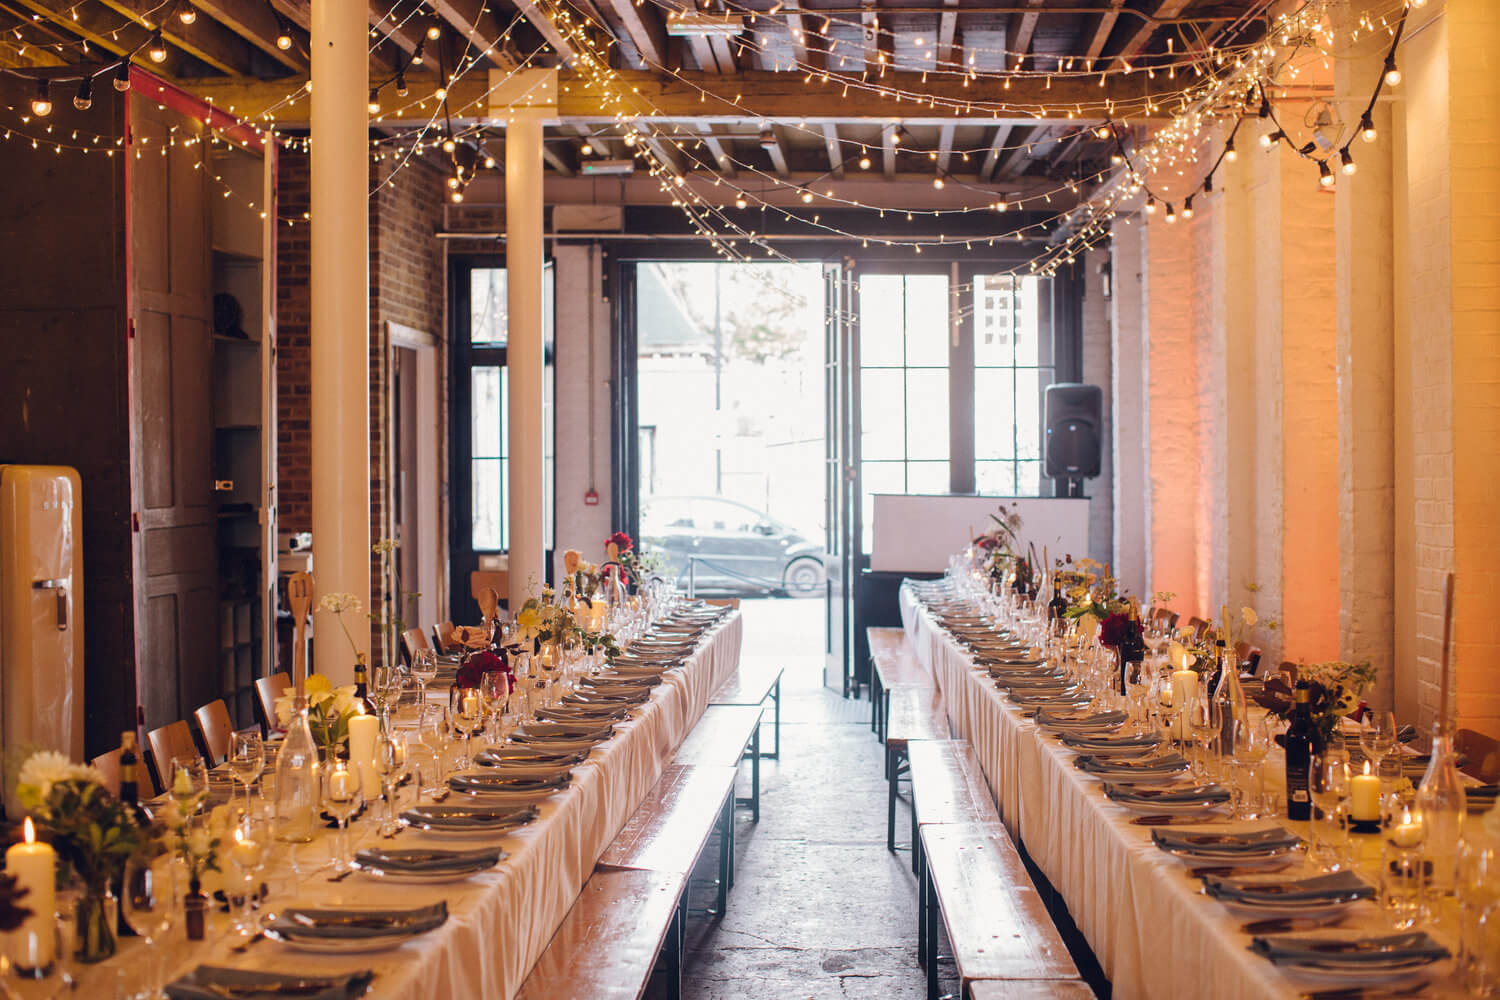 Secret London venue, Quirky Venue, Non-traditional wedding planner, London Wedding coordination, Bespoke weddings, Brixton Wedding, Informal,